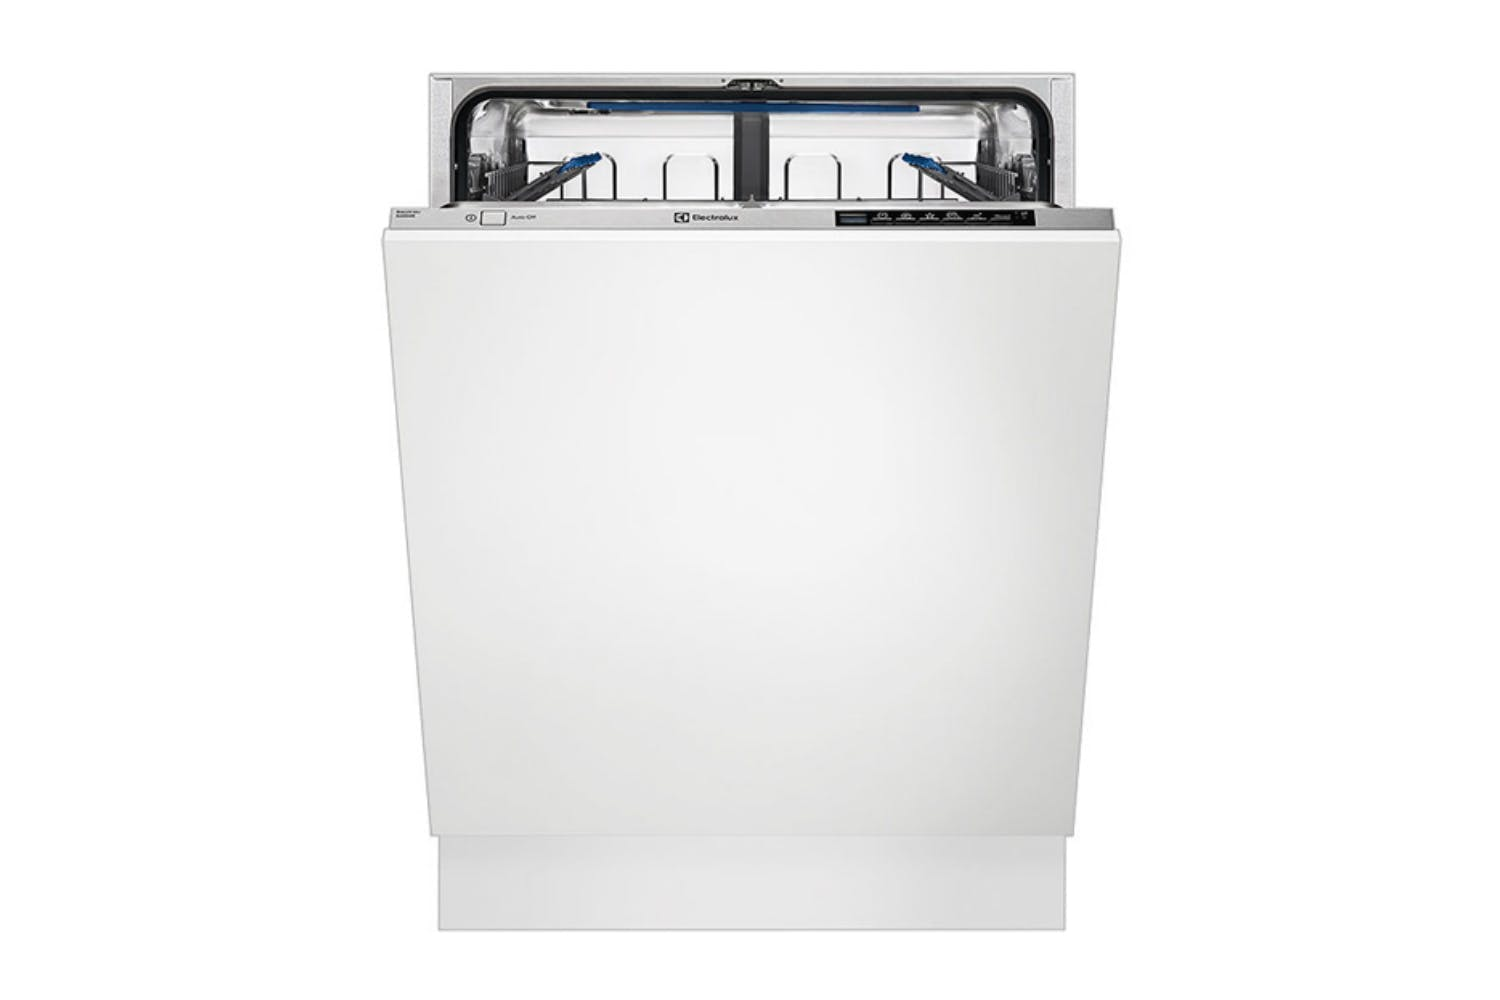 d3da0a199 Electrolux Fully Integrated Dishwasher